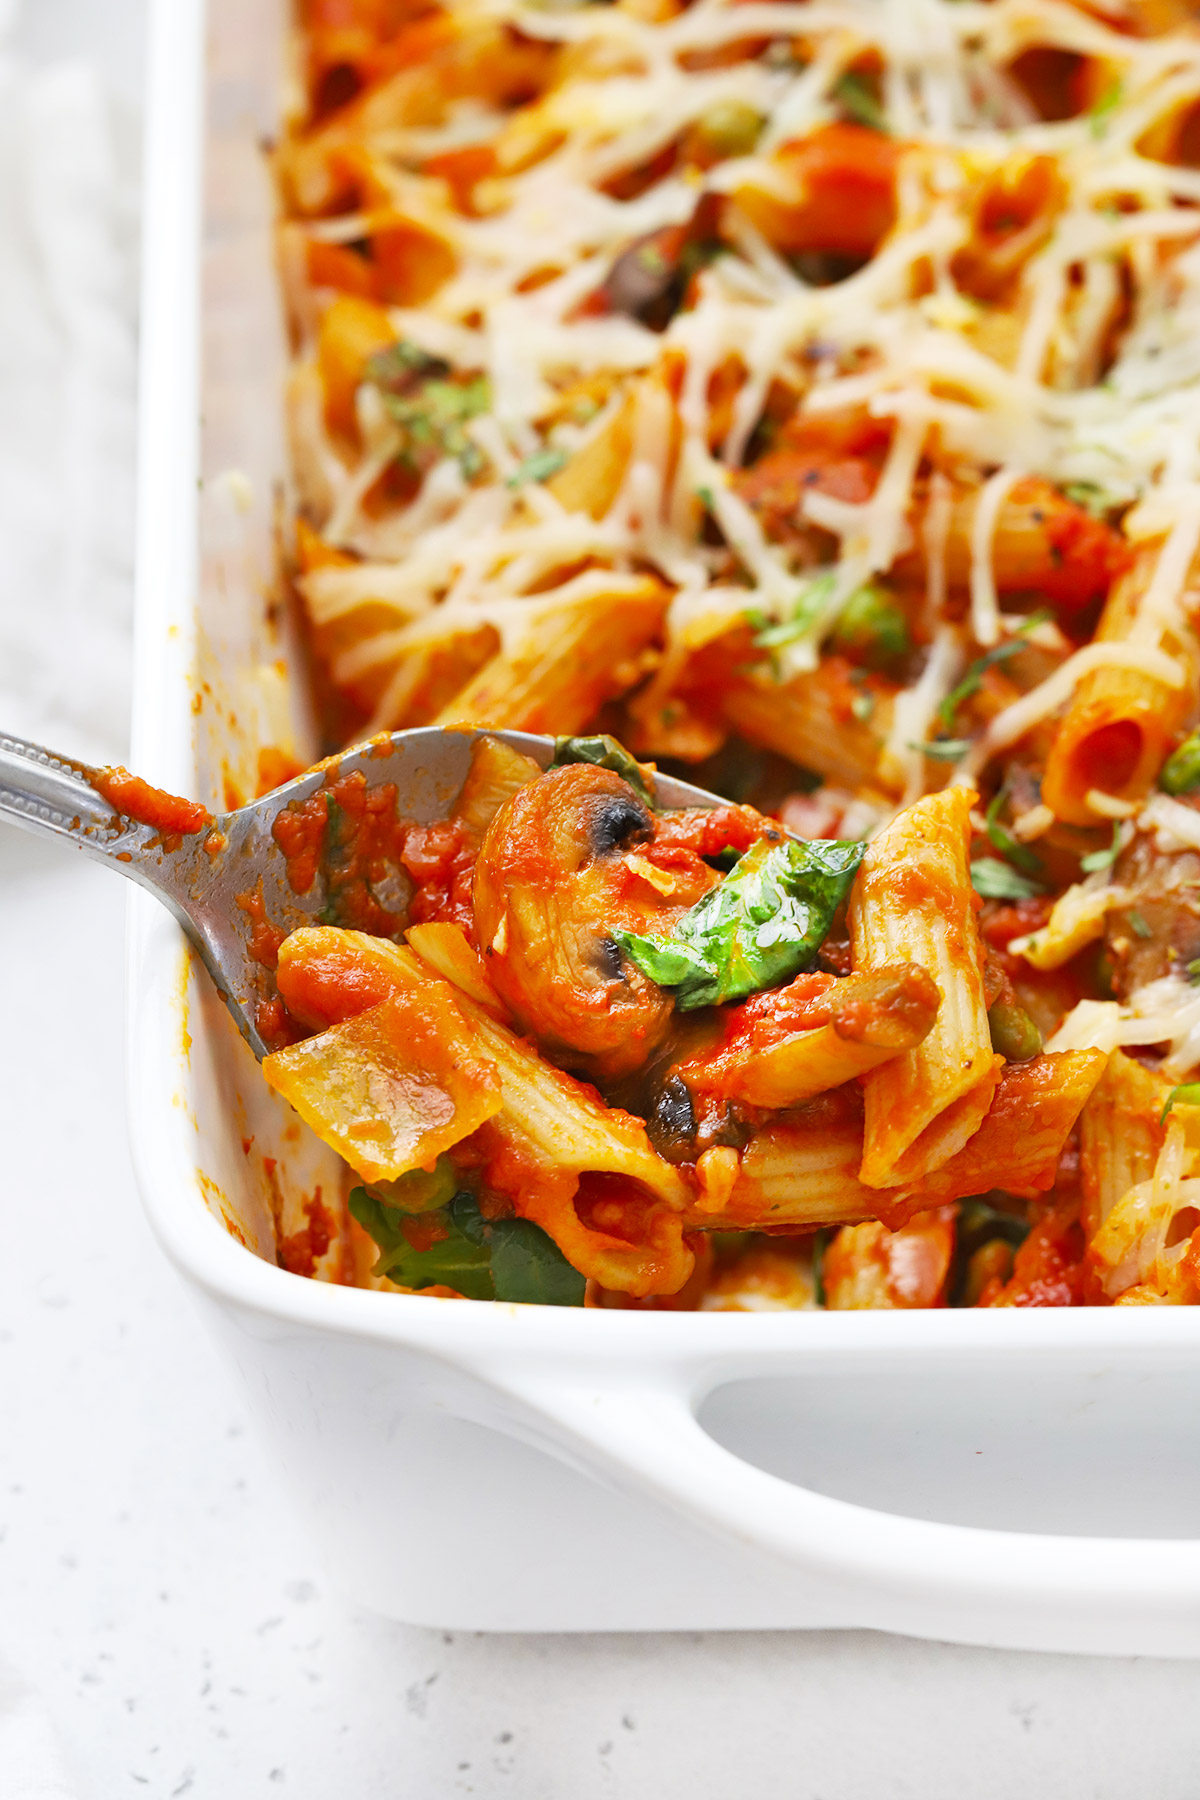 Close up view of a spoon scooping out a serving of baked penne with roasted veggies from the pan